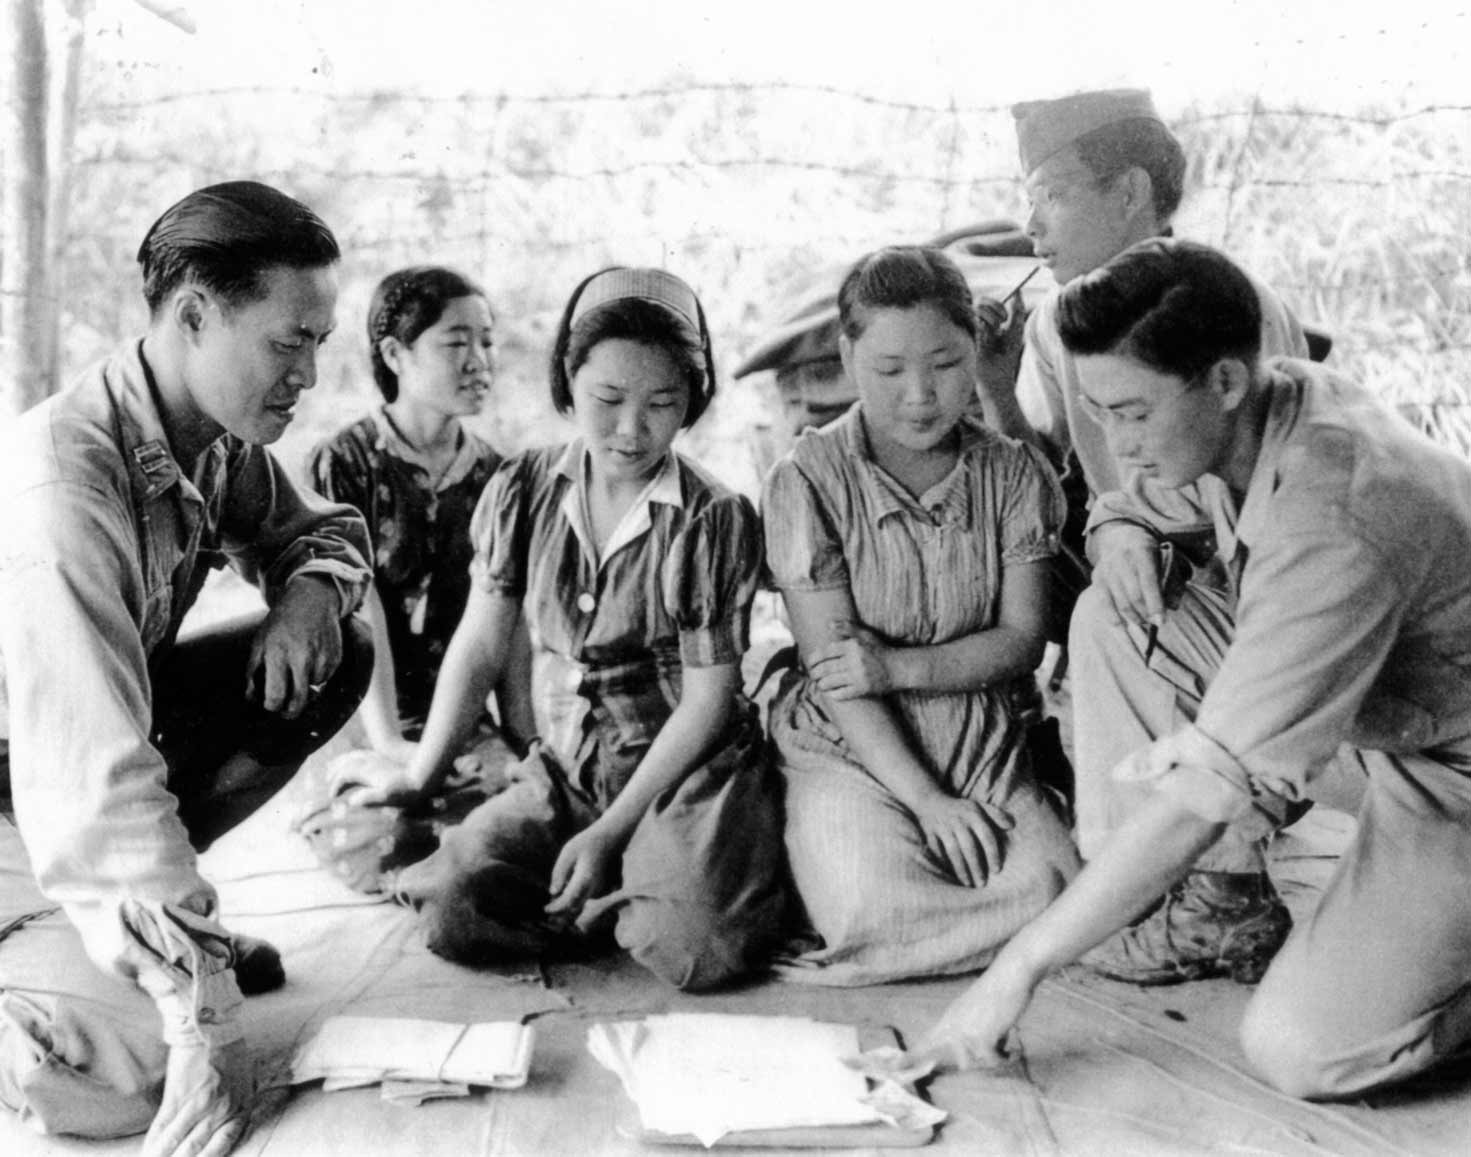 Comfort women with soldiers in World War 2